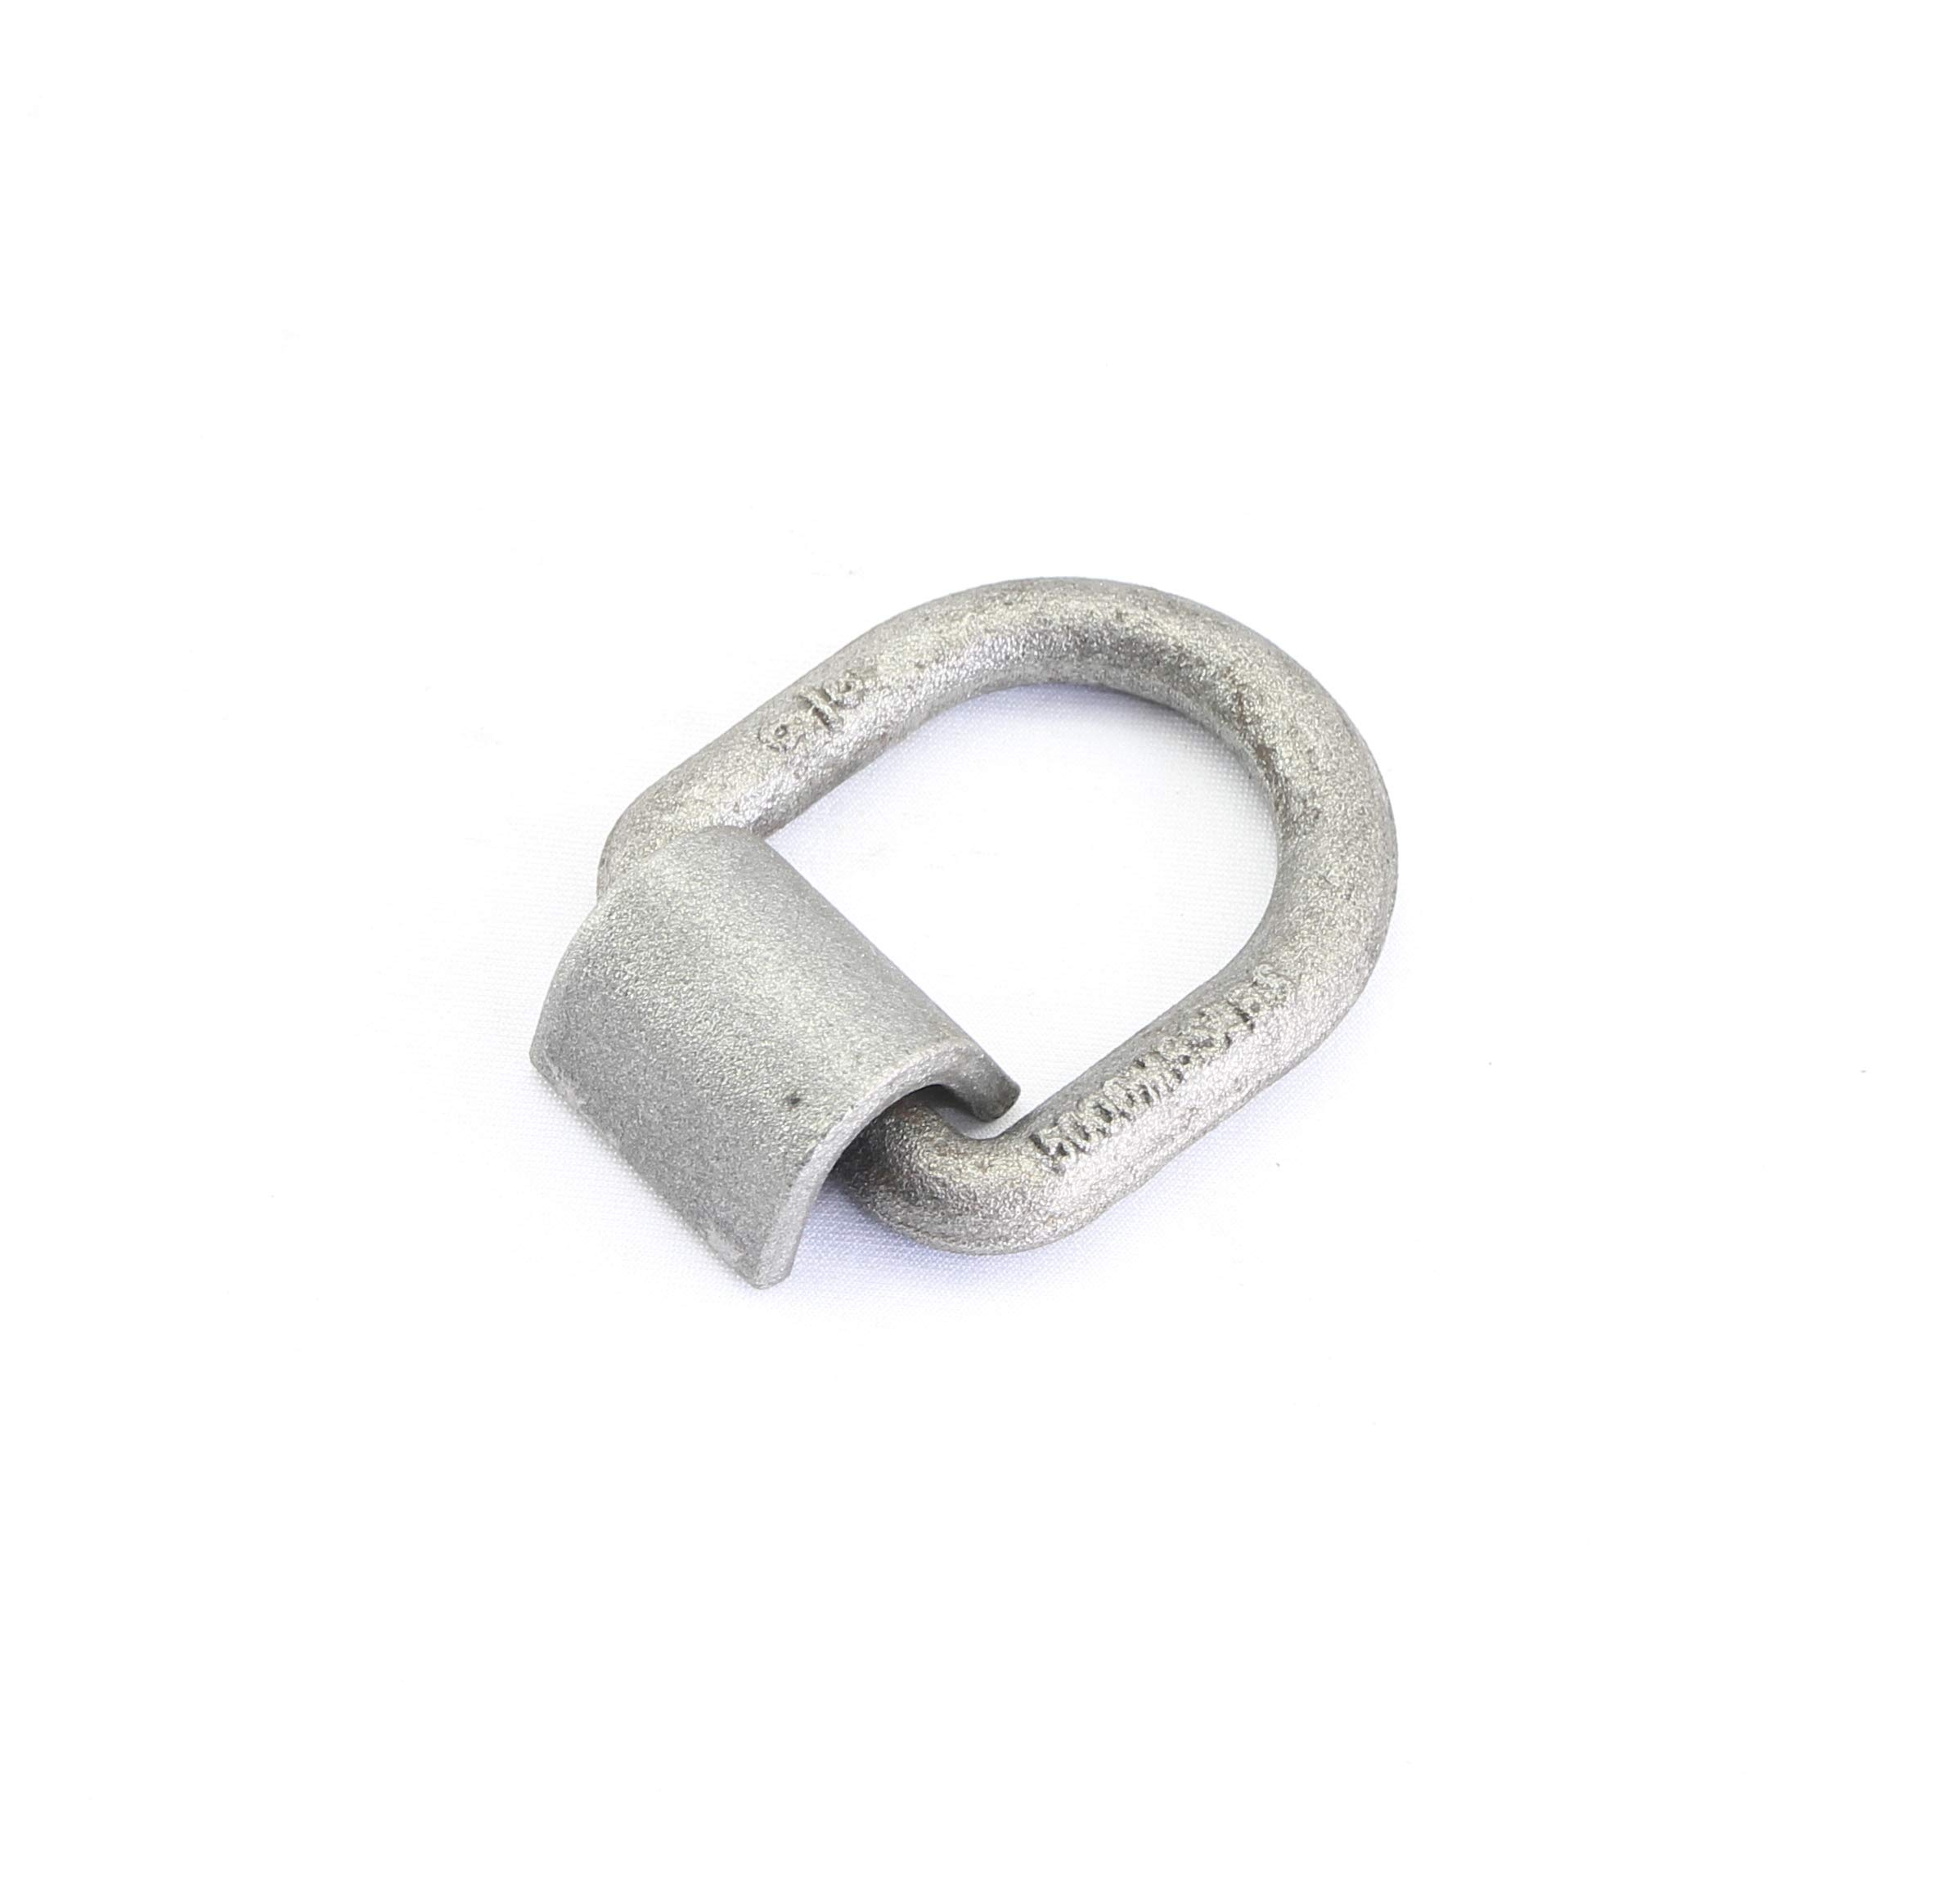 3/8'' 5,000 Lbs Load Capacity Weld-on Forged Flip D-ring Anchor (Pack of 12)